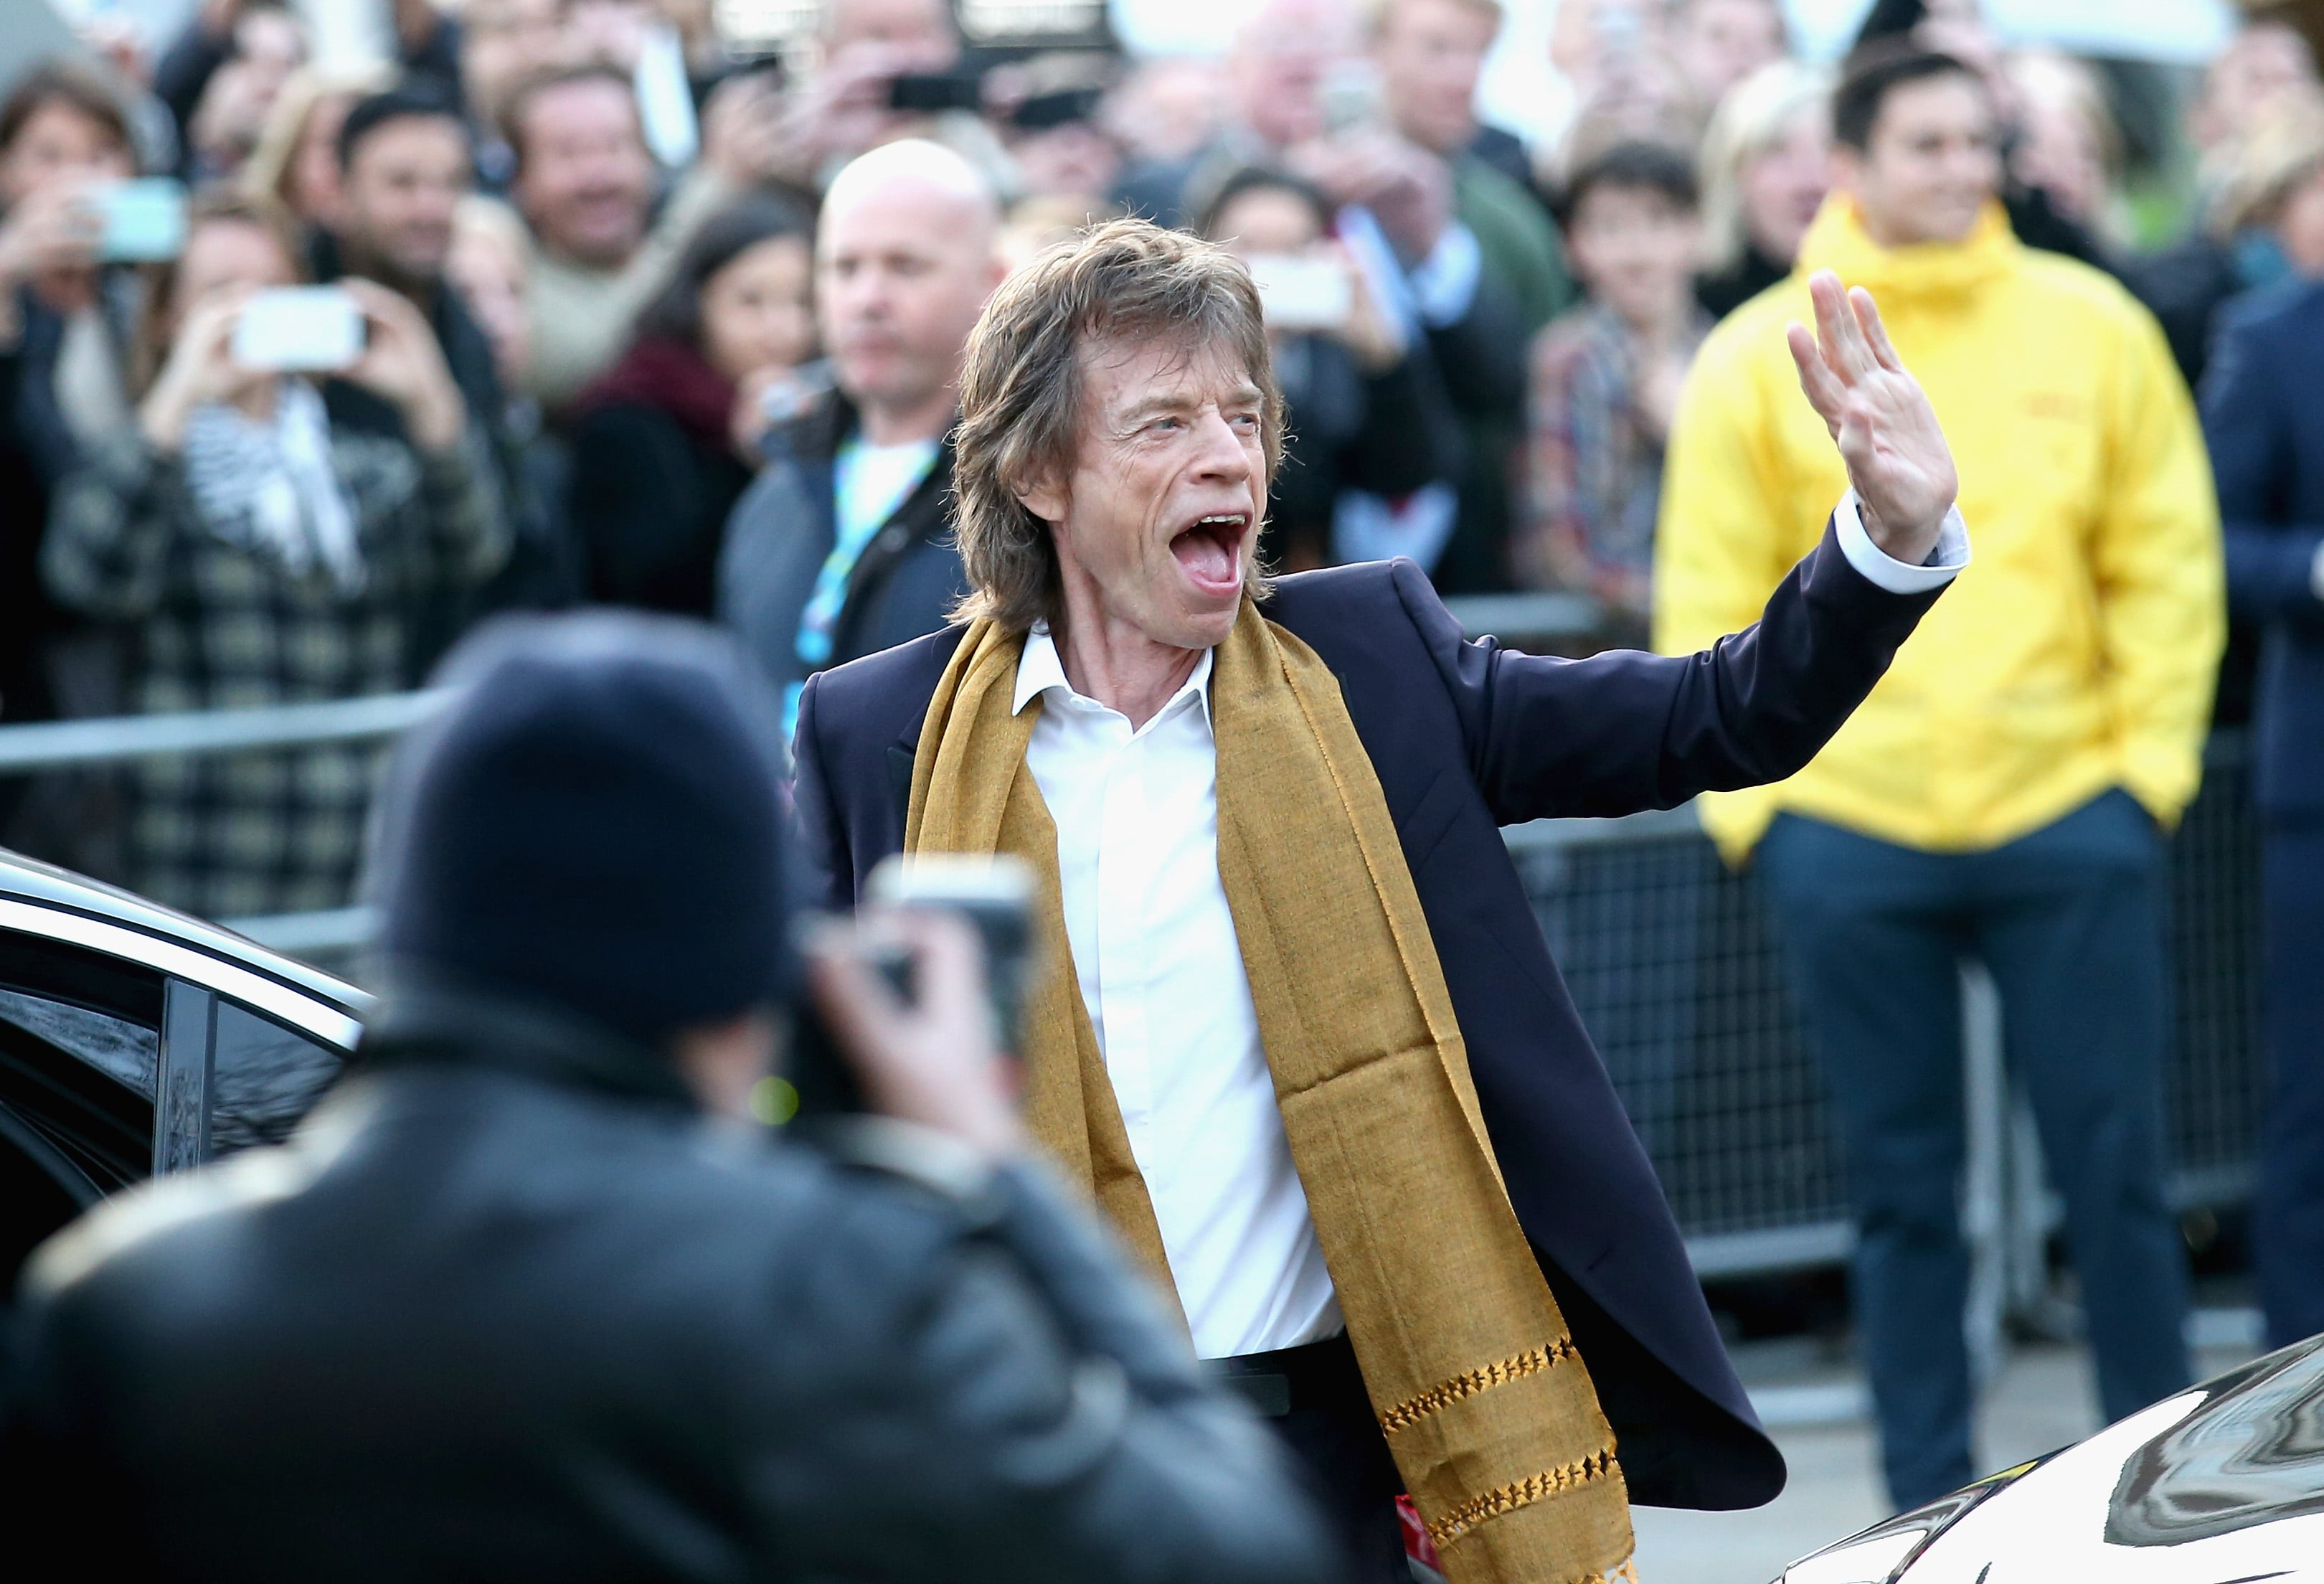 Pictures of melanie hamrick mick jagger s new girlfriend 43 years - Mick Jagger Expecting Eighth Child With Melanie Hamrick